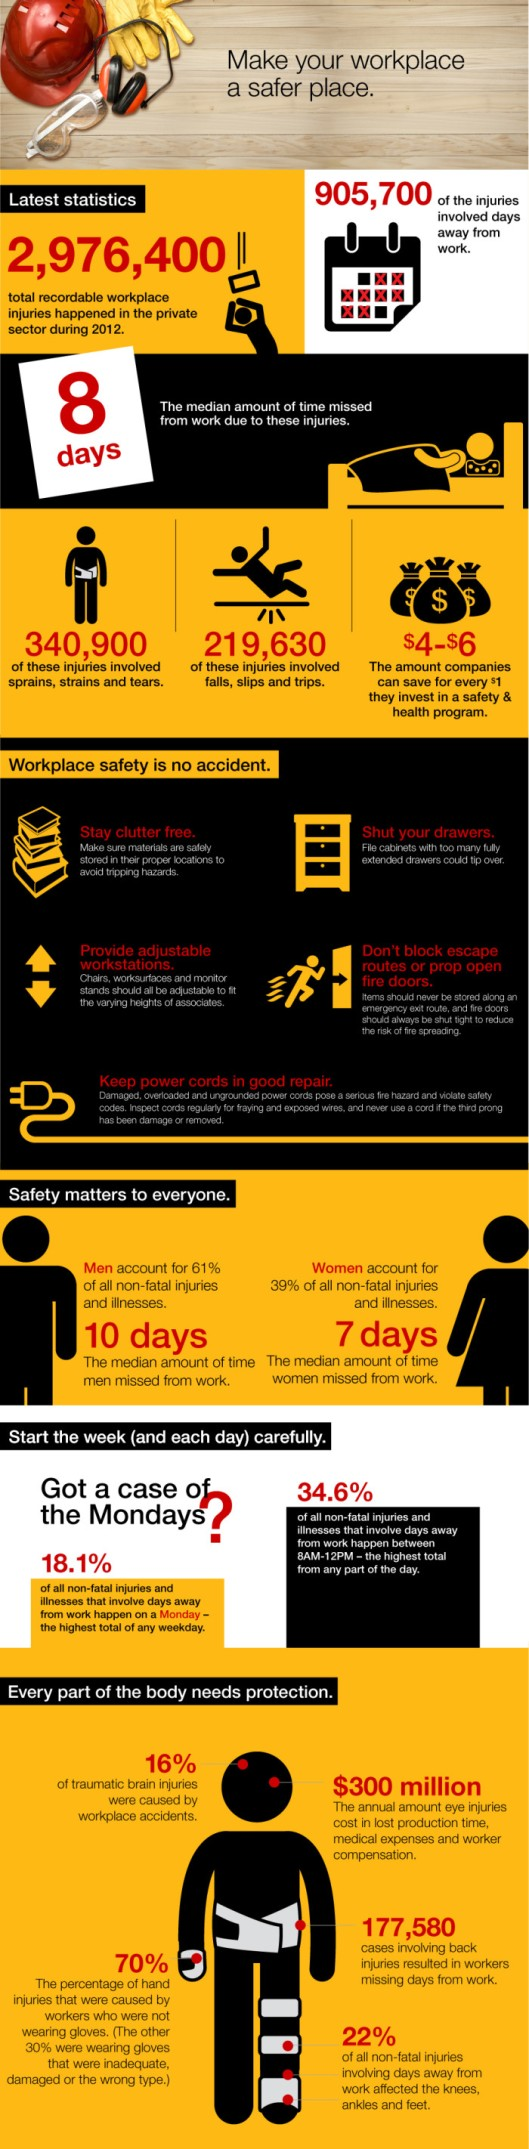 May 2015 Workplace Safety Infographic